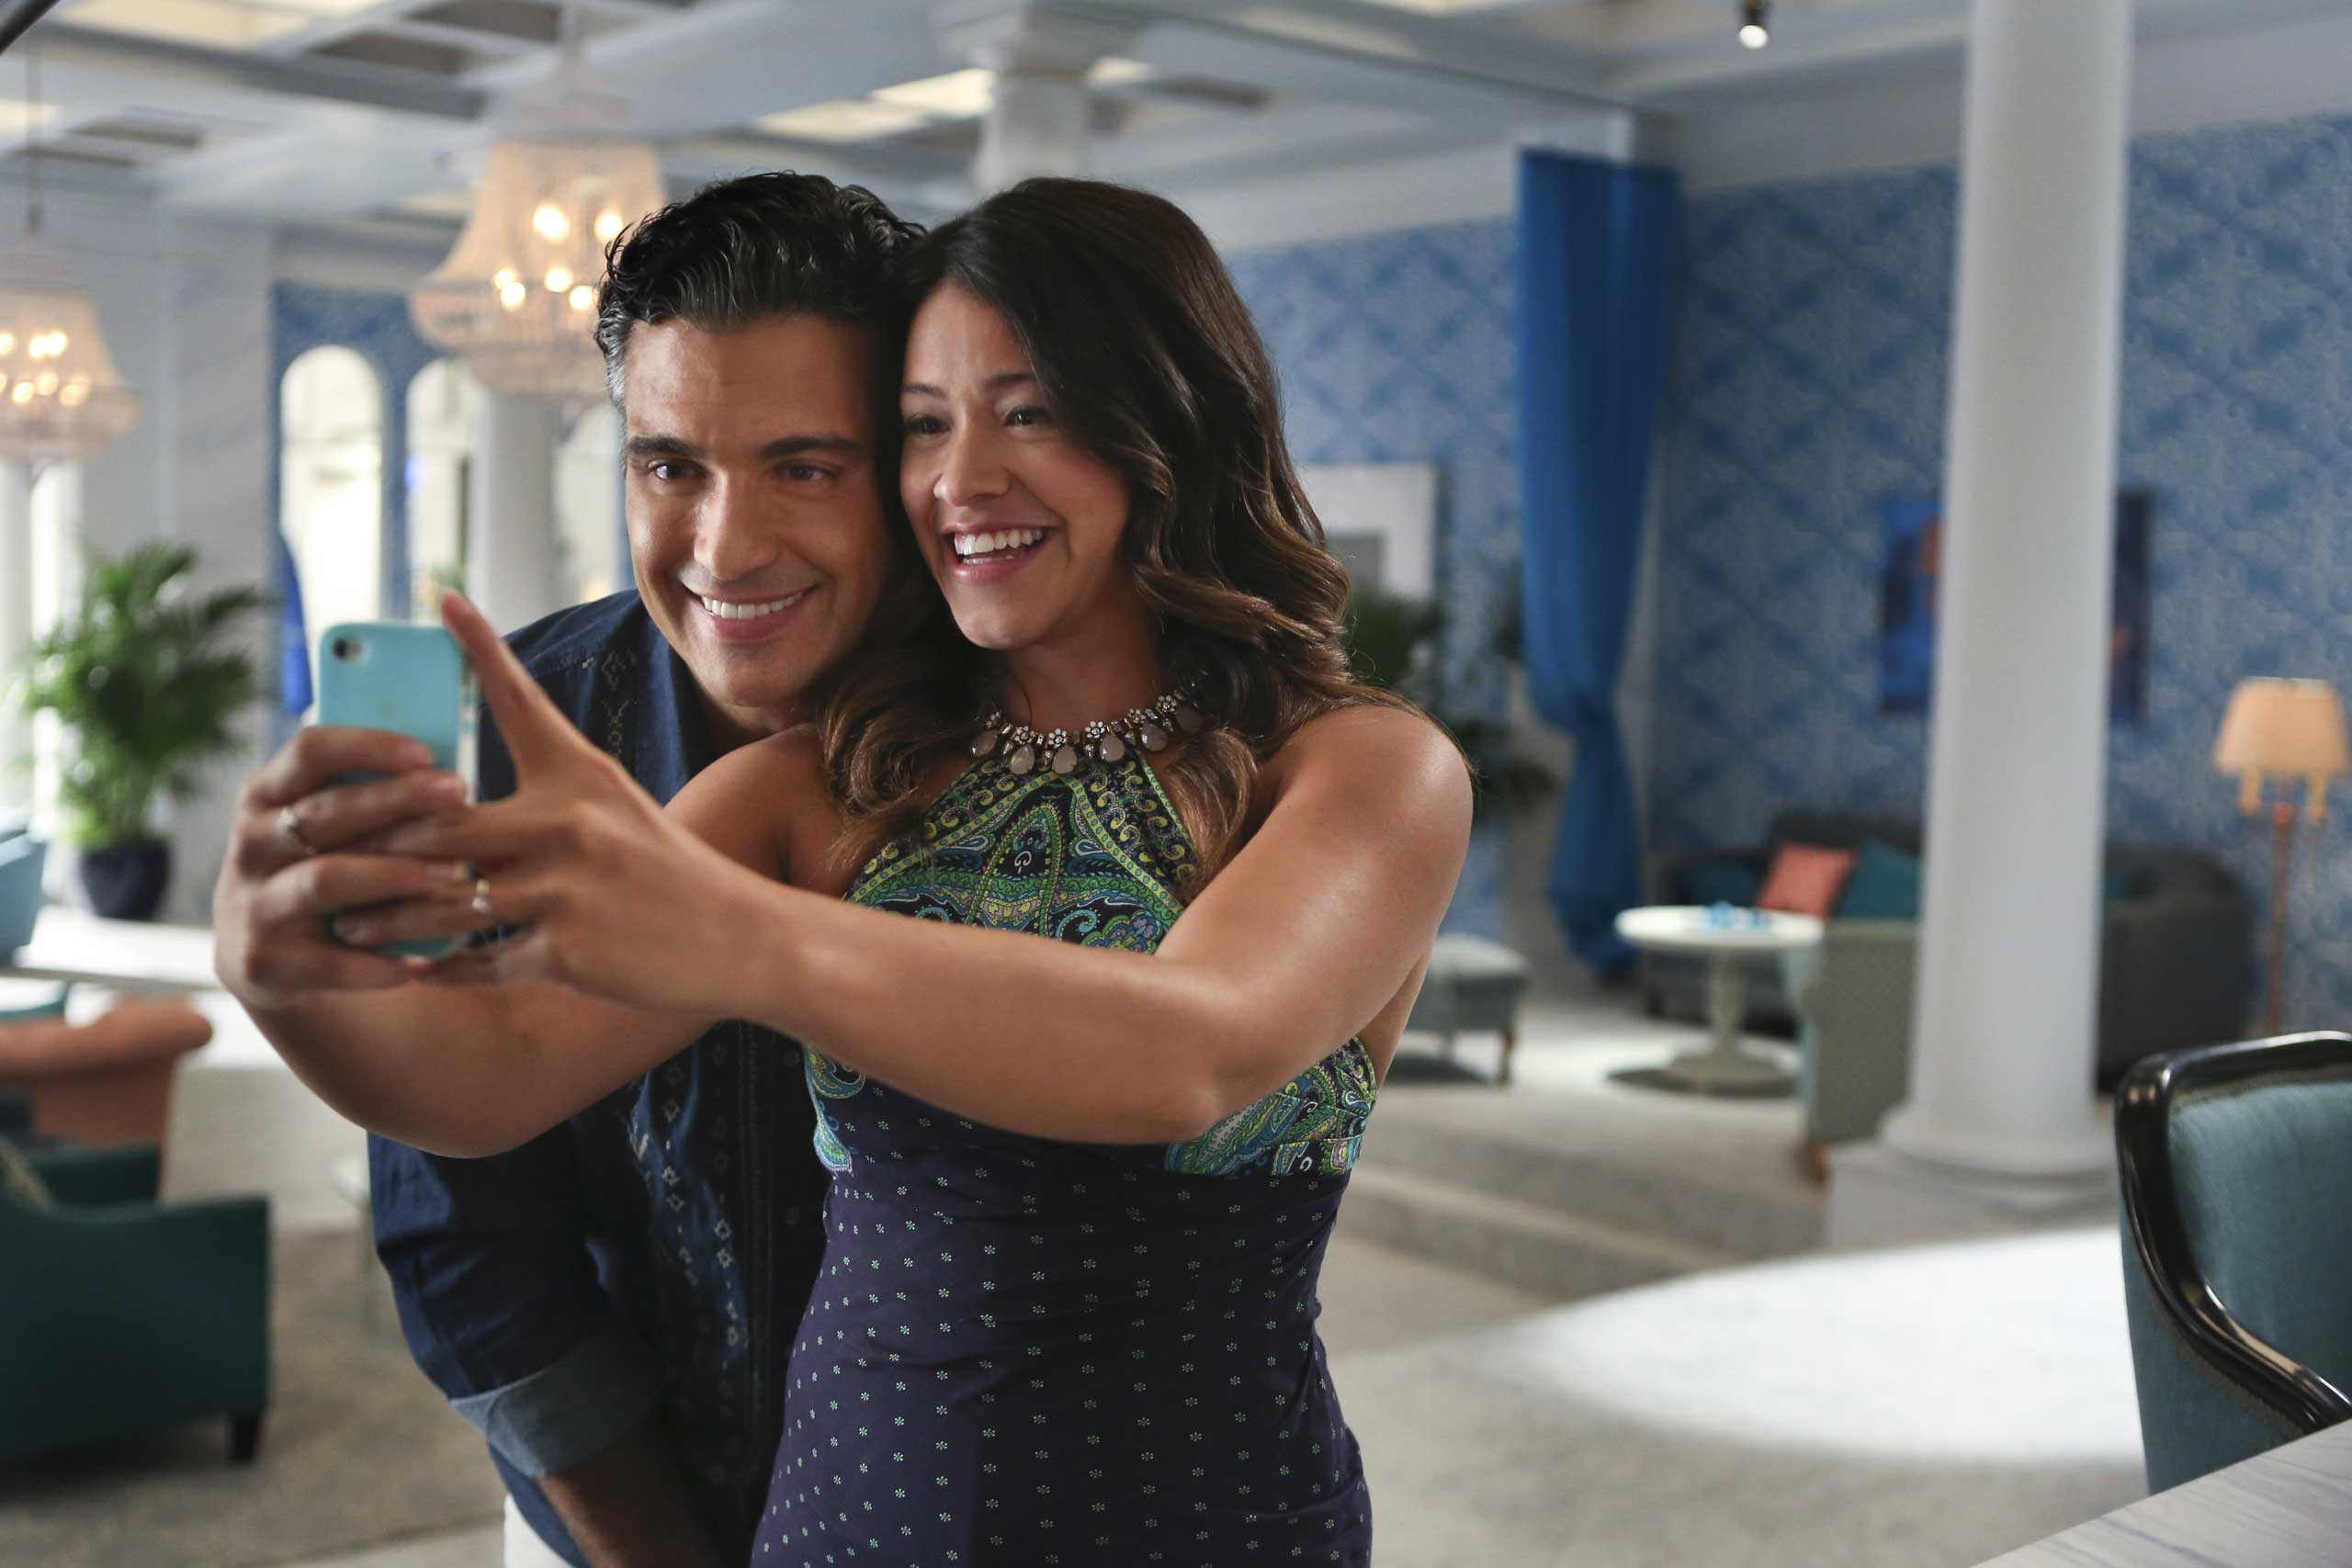 In foto, Jaime Camil e Gina Rodriguez sul set della serie Jane the Virgin. Foto di Patrick Wymore/The CW